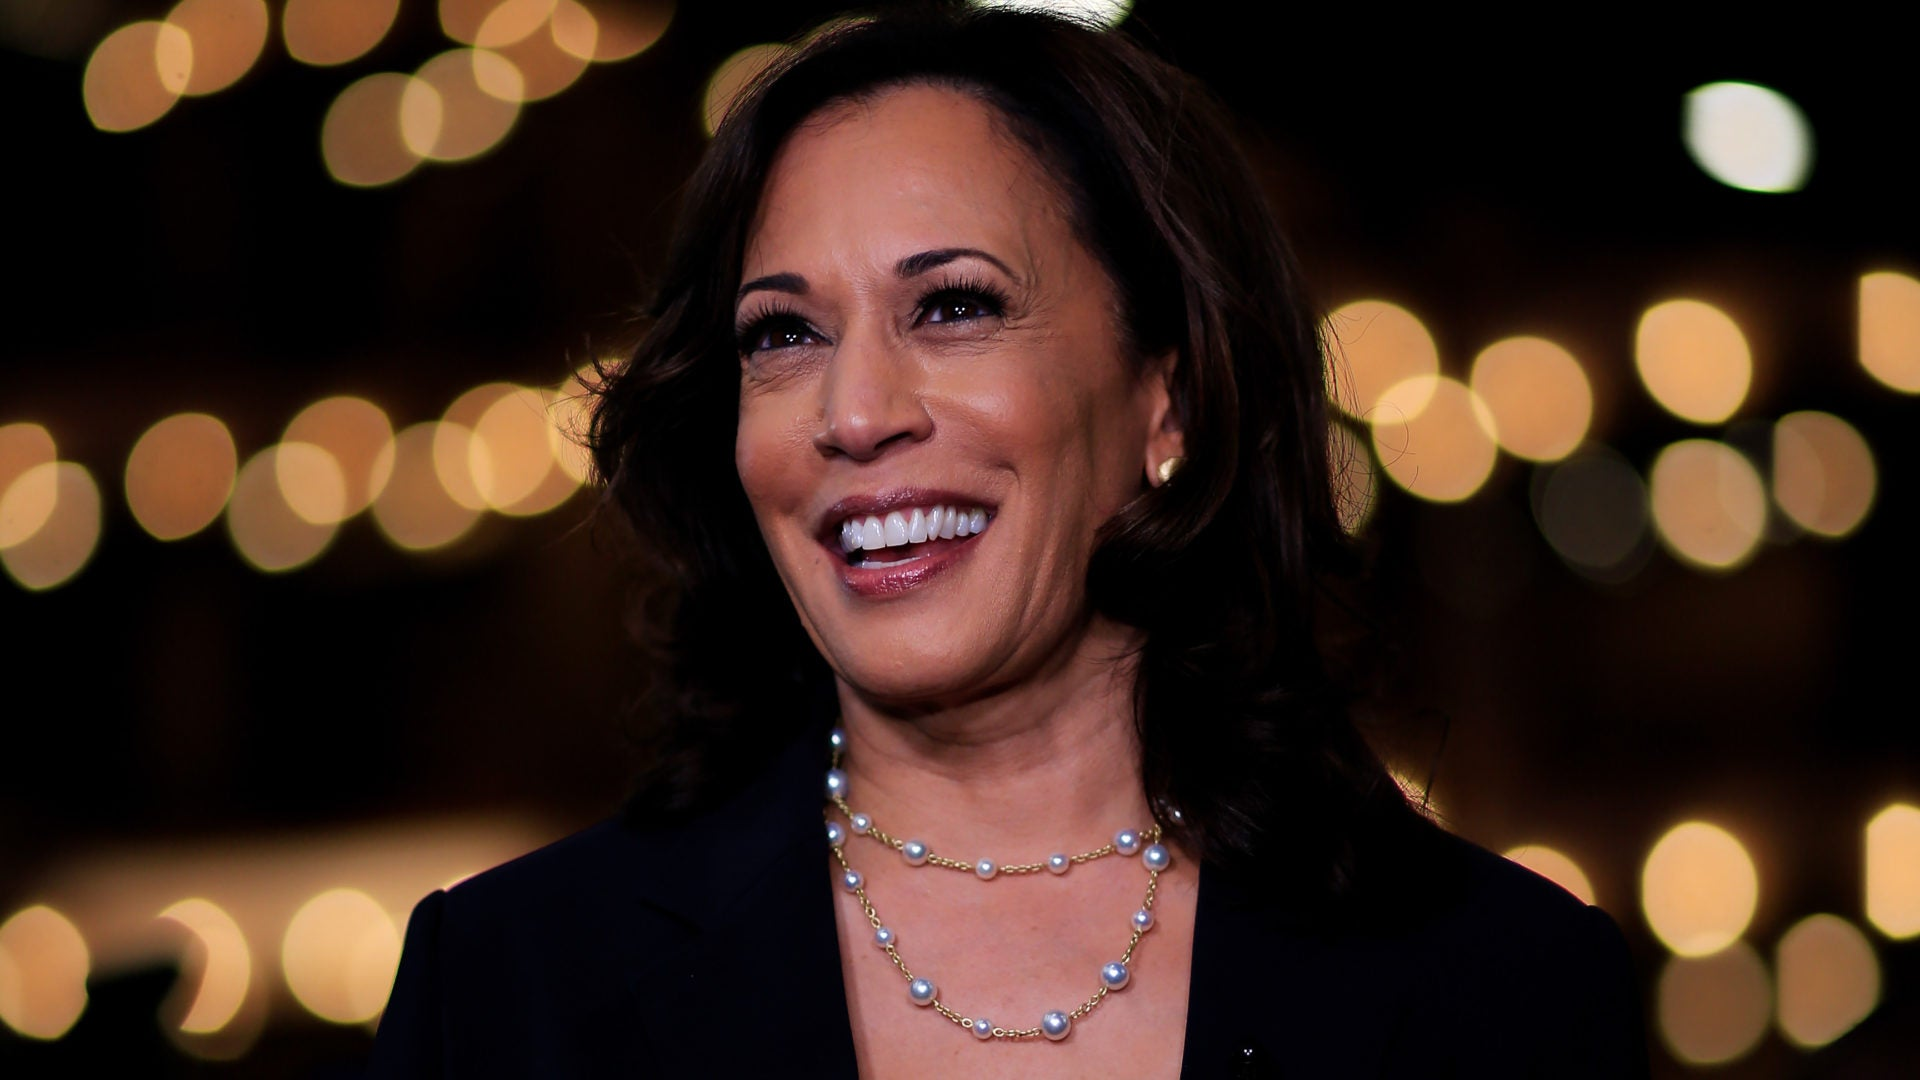 Sen. Kamala Harris Defends Pelosi Amid Tensions With 'The Squad'